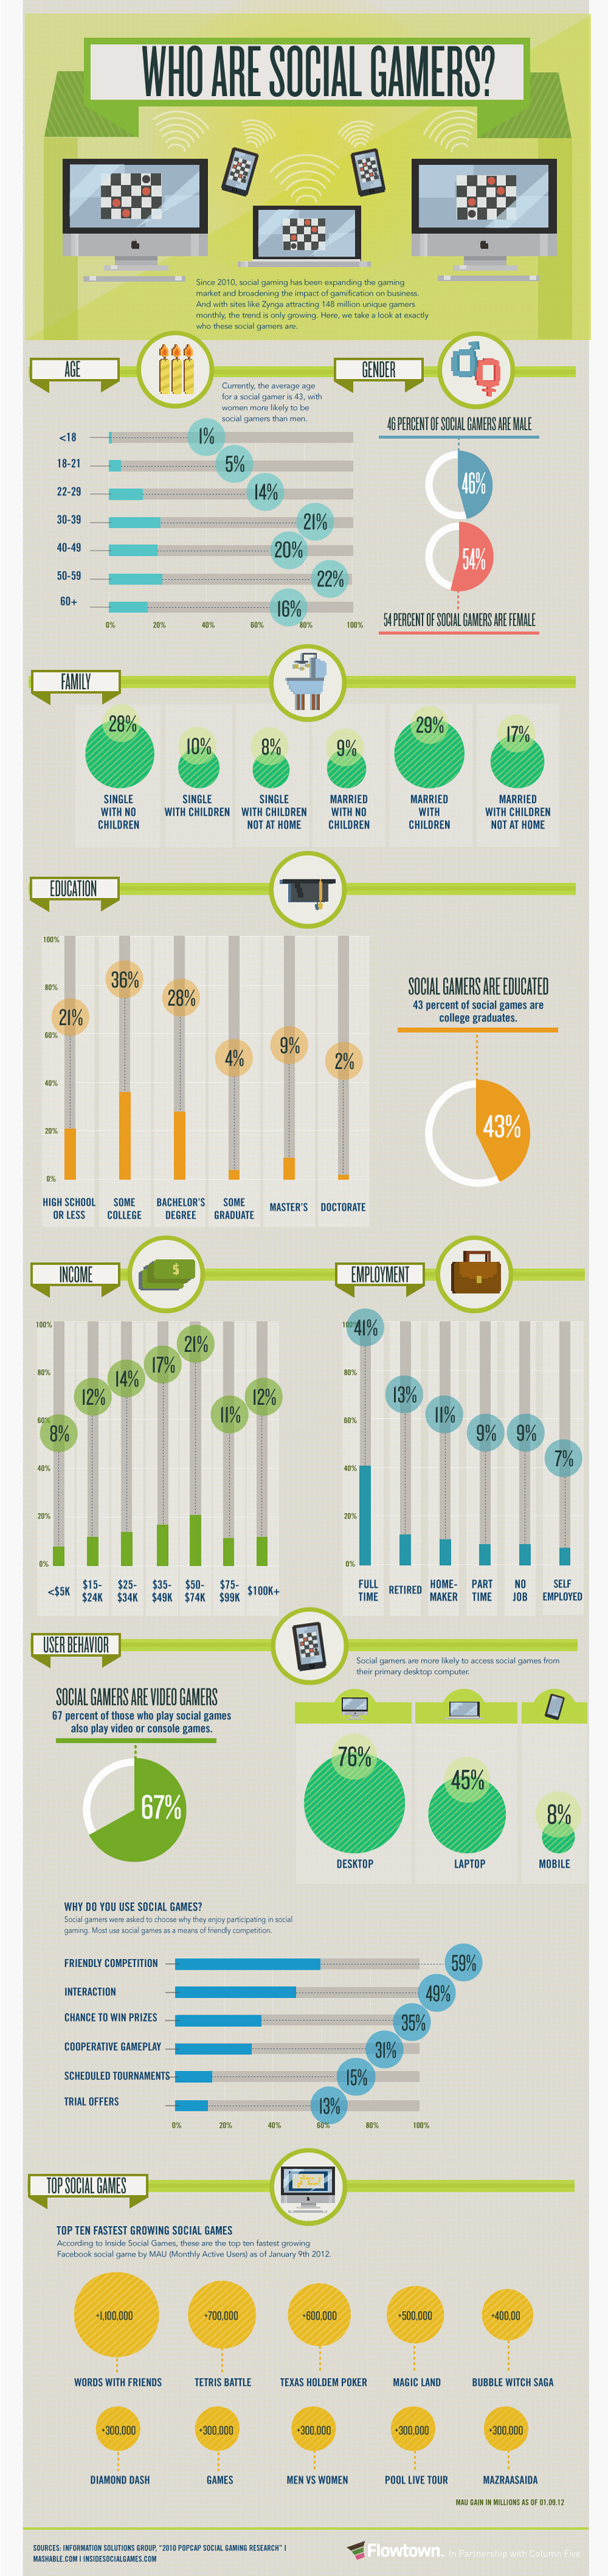 #infographics ---> 54% of social gamers are female. http://gamificationnation.com/